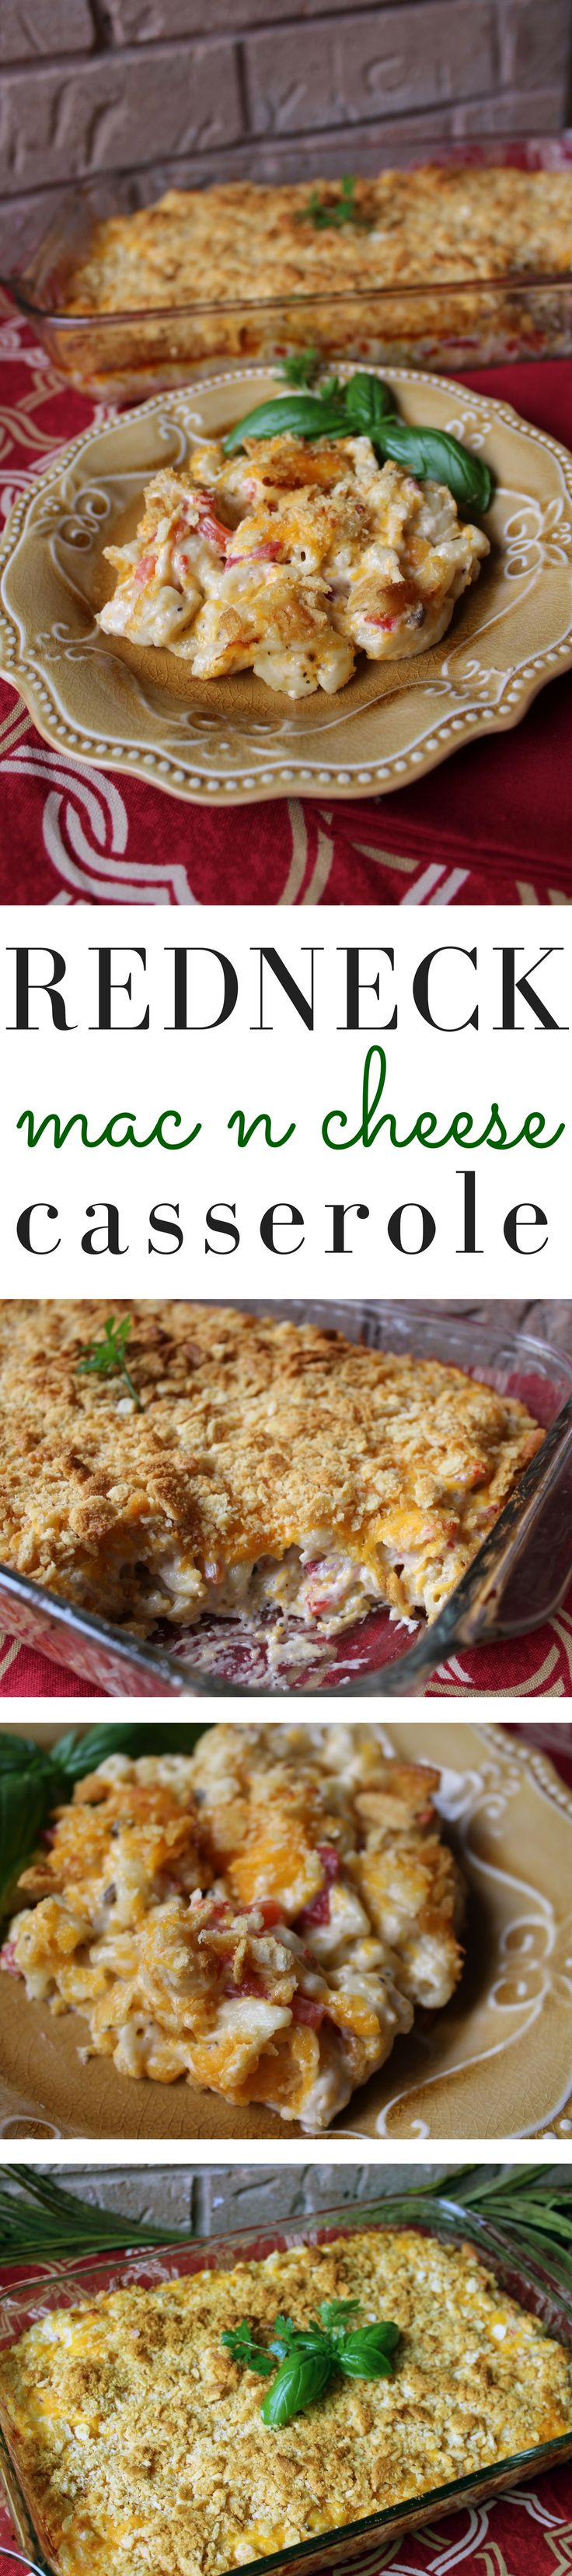 This is not your typical mac and cheese. It's rich and creamy from the cream of mushroom/mayo mixture. Pimentos and onions add tons of flavor. Make sure to add the Ritz crackers with the cheese - it's a delicious topping.